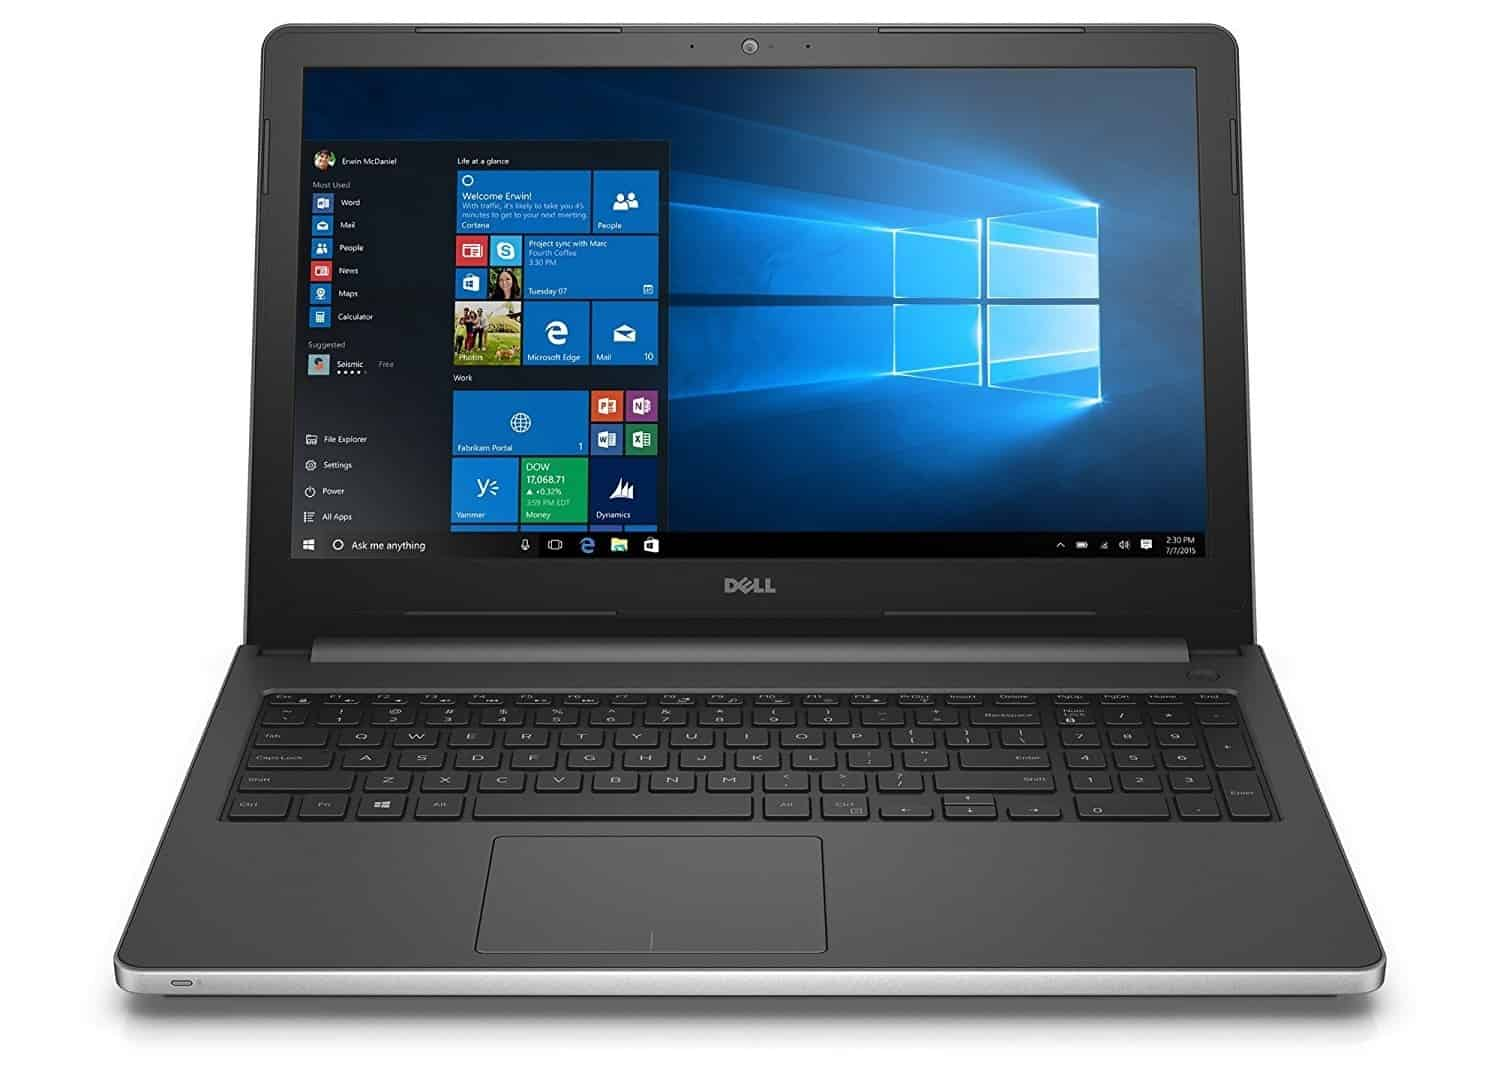 Dell Inspiron i5559 Review